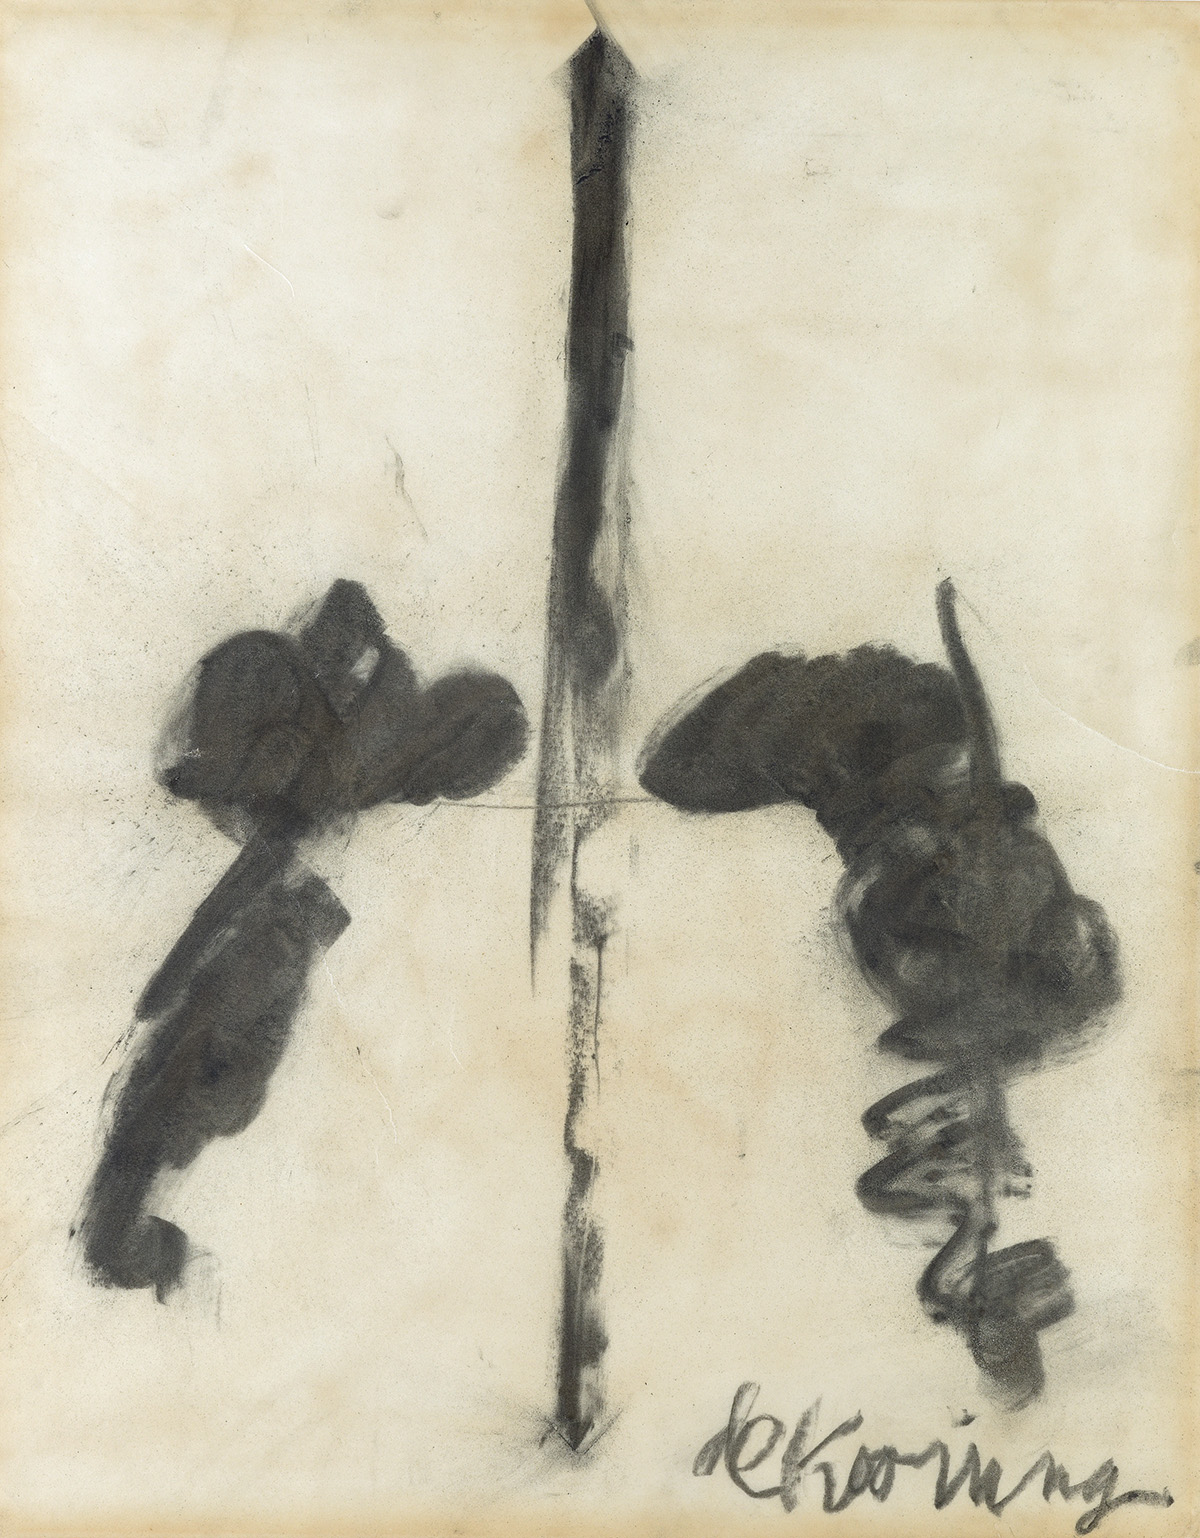 WILLEM DE KOONING Untitled (Washington Monument).